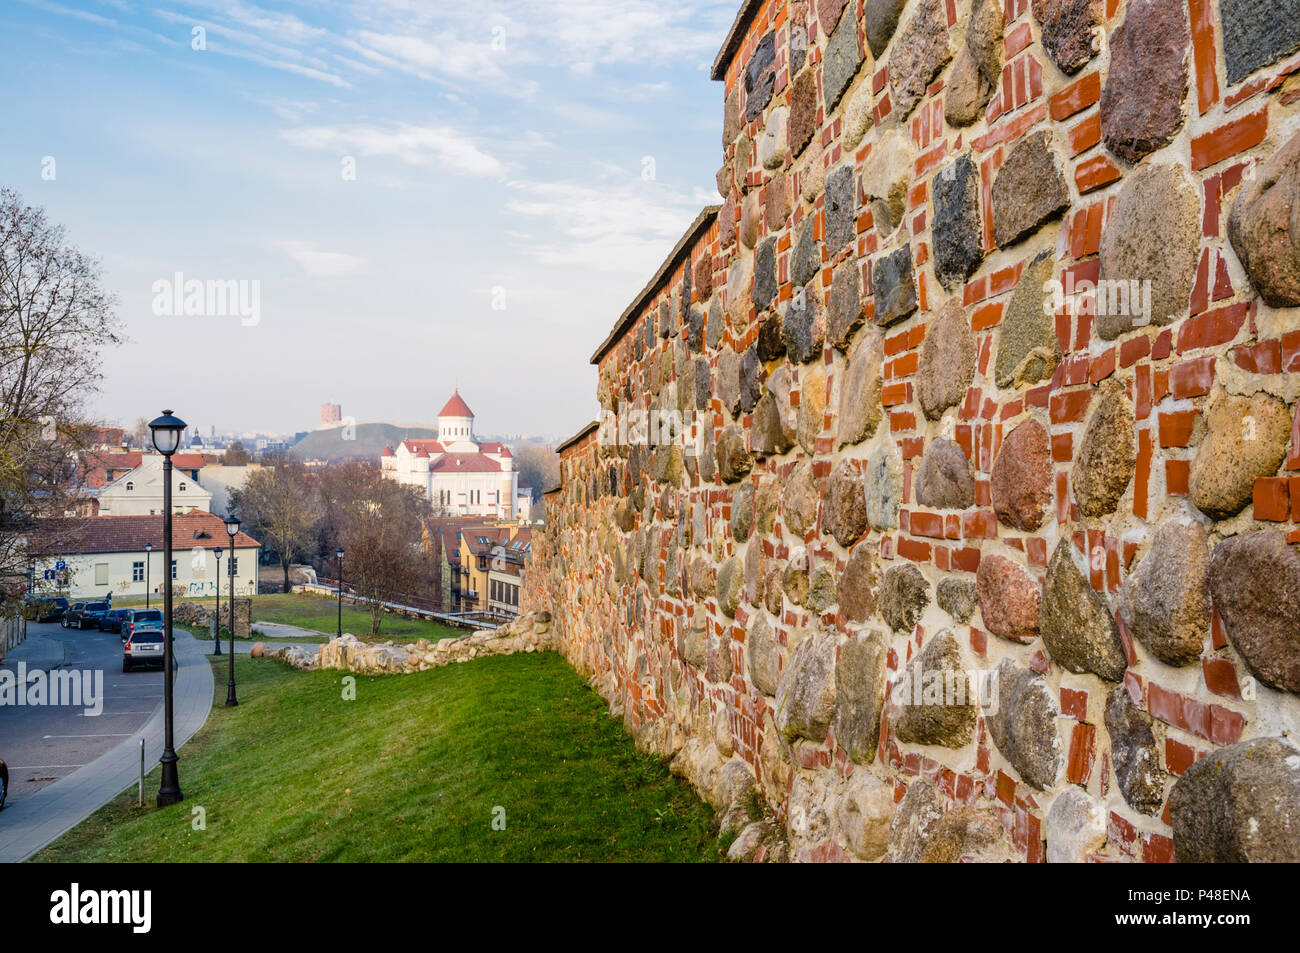 Old wall of Vilnius Old Town and Church of the Holy Mother of God in background. Vilnius, Lithuania, Europe - Stock Image